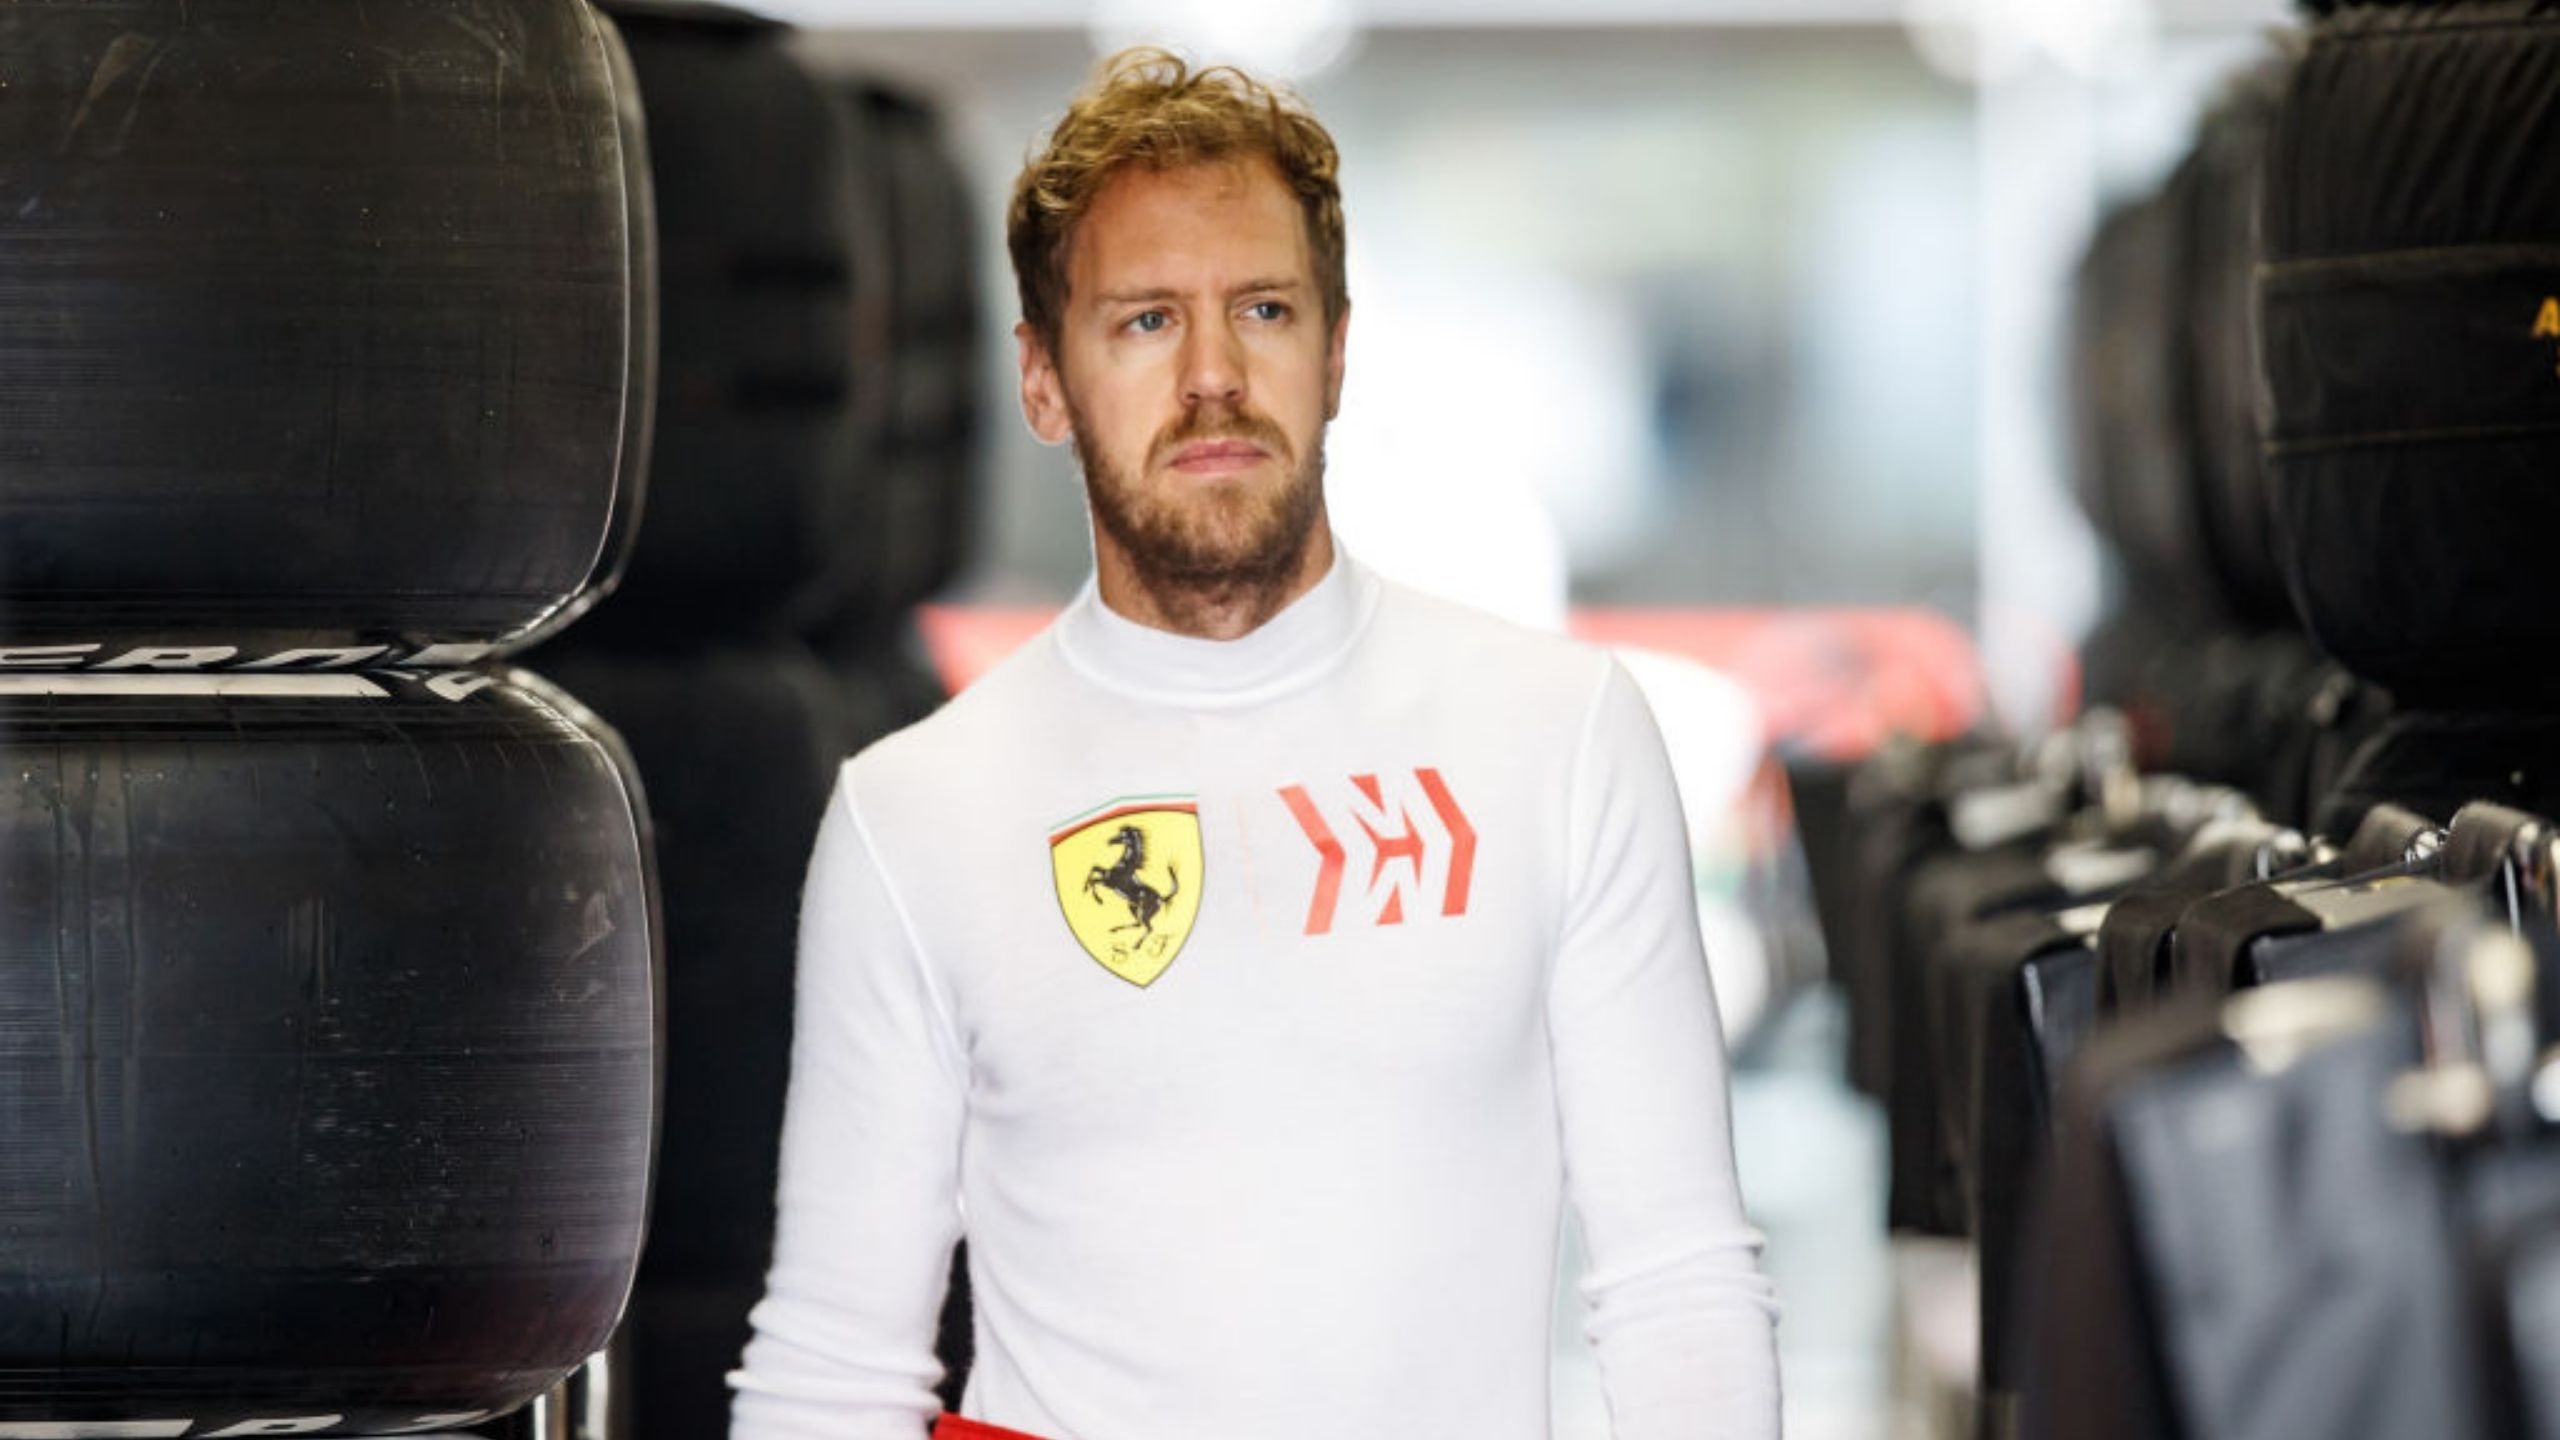 """He's driving in another league"" - Sebastian Vettel concedes Ferrari teammate Charles Leclerc on a different level at Portuguese GP"